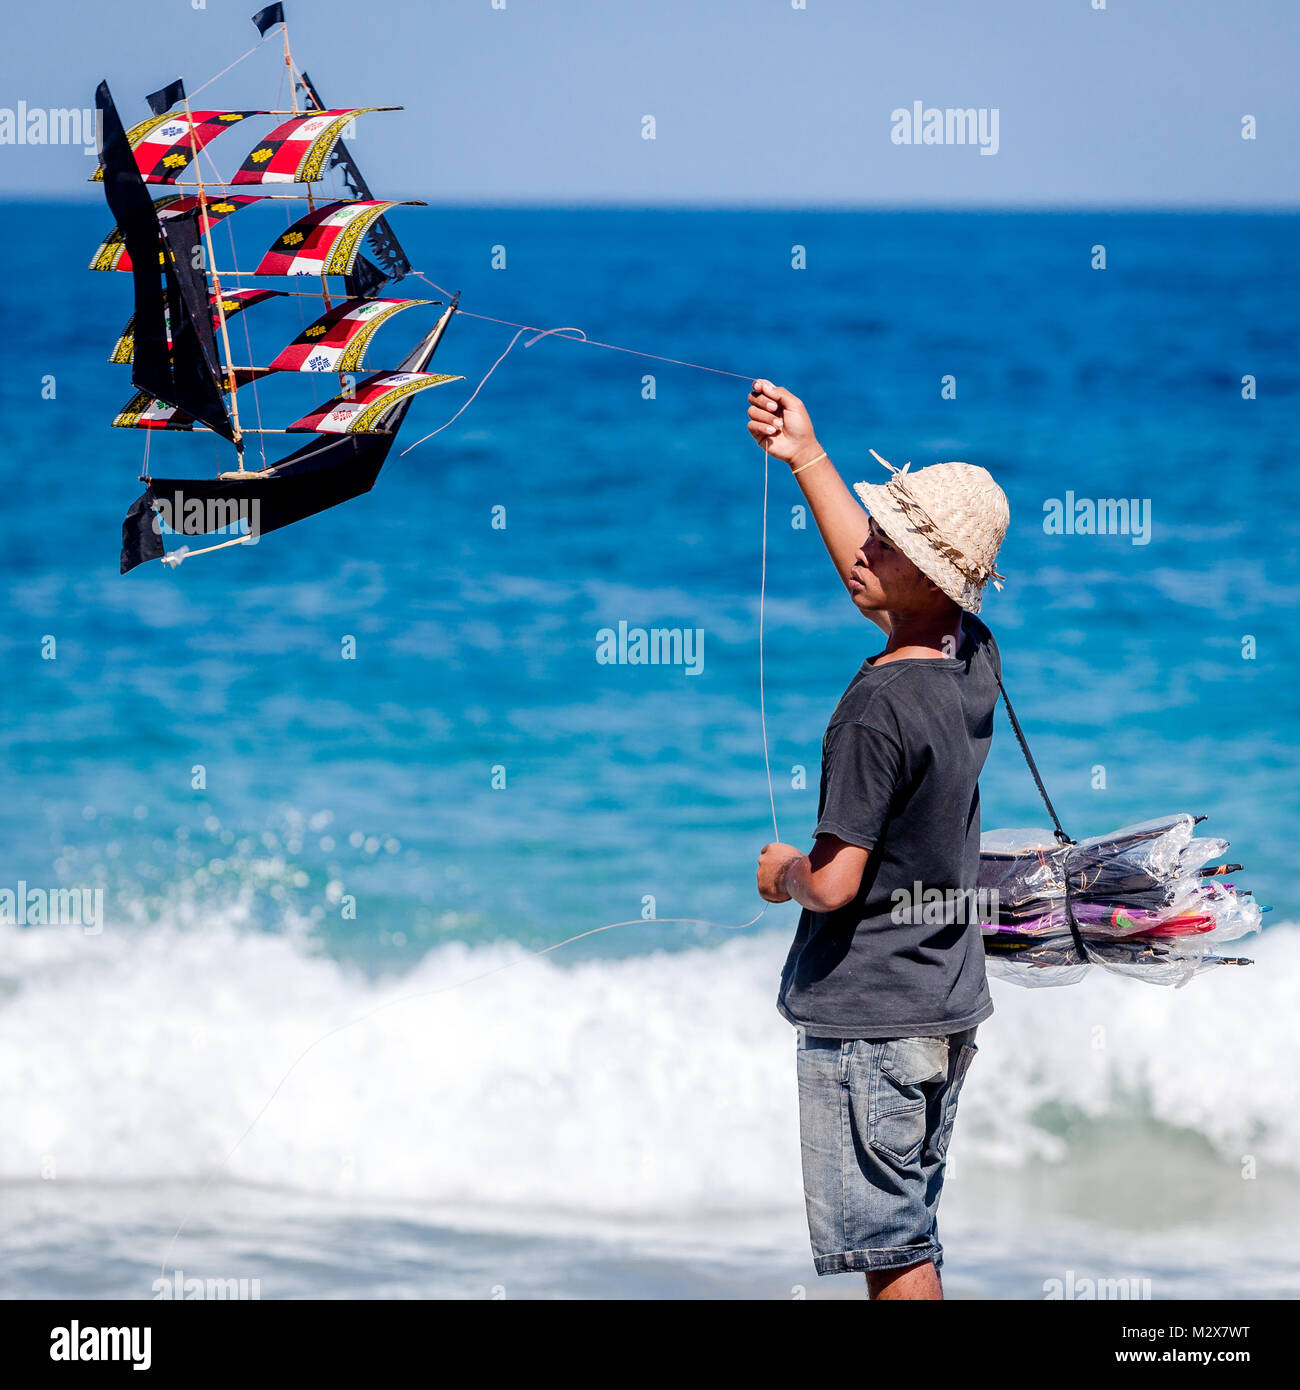 Bali, August 31, 2013: Balinese boy sells kites on the Bali beach Stock Photo